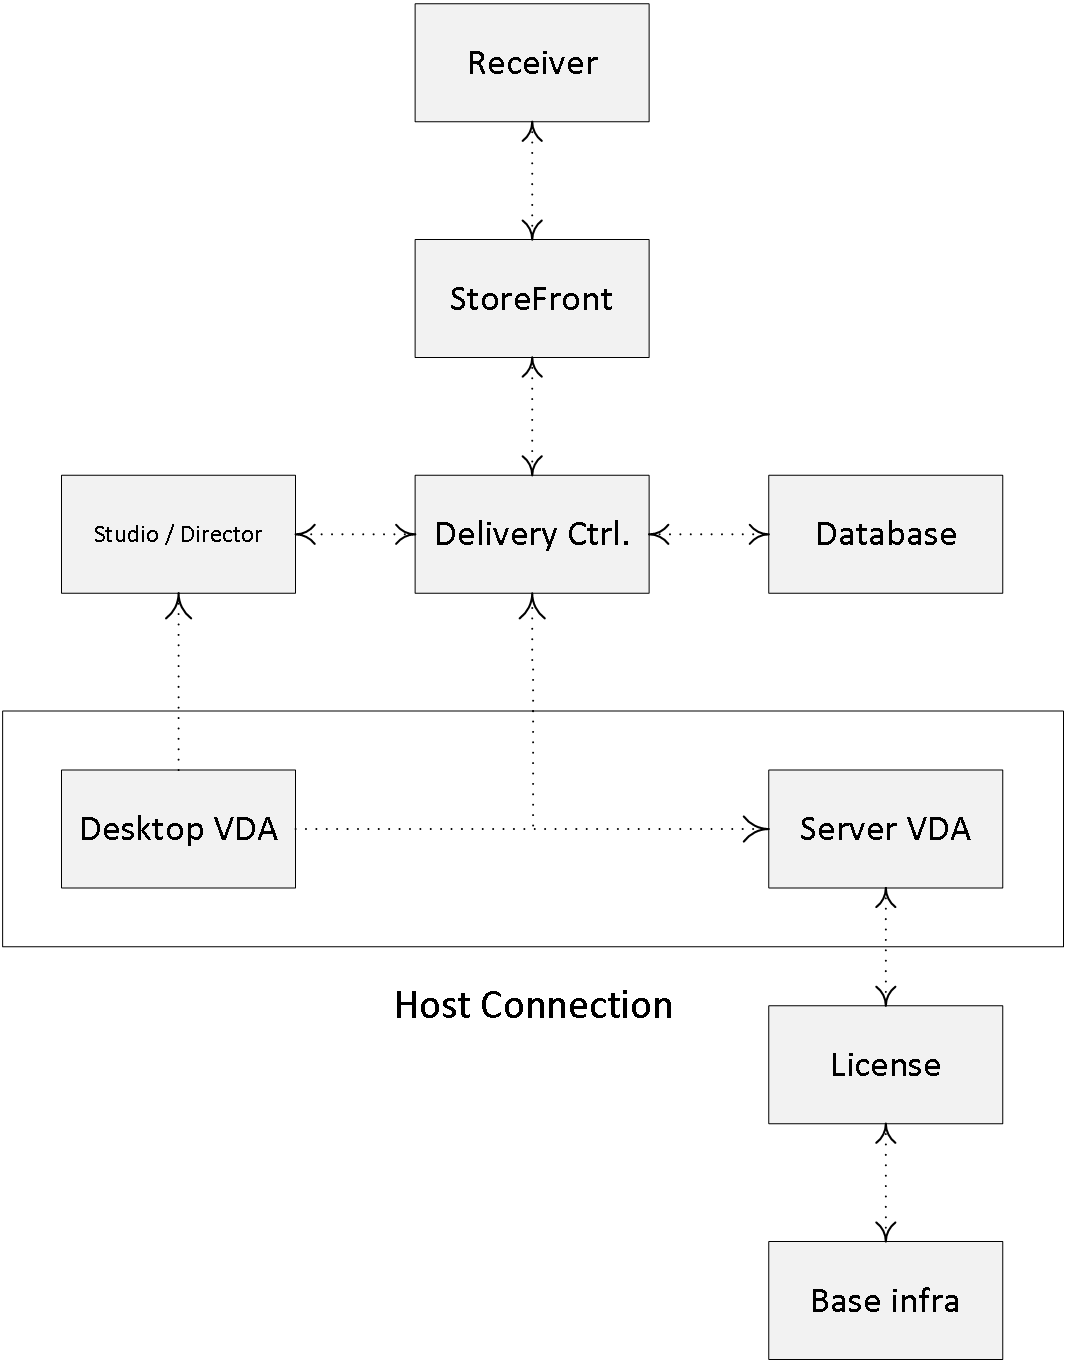 Inside Citrix chapter six – The one with the Delivery Controller